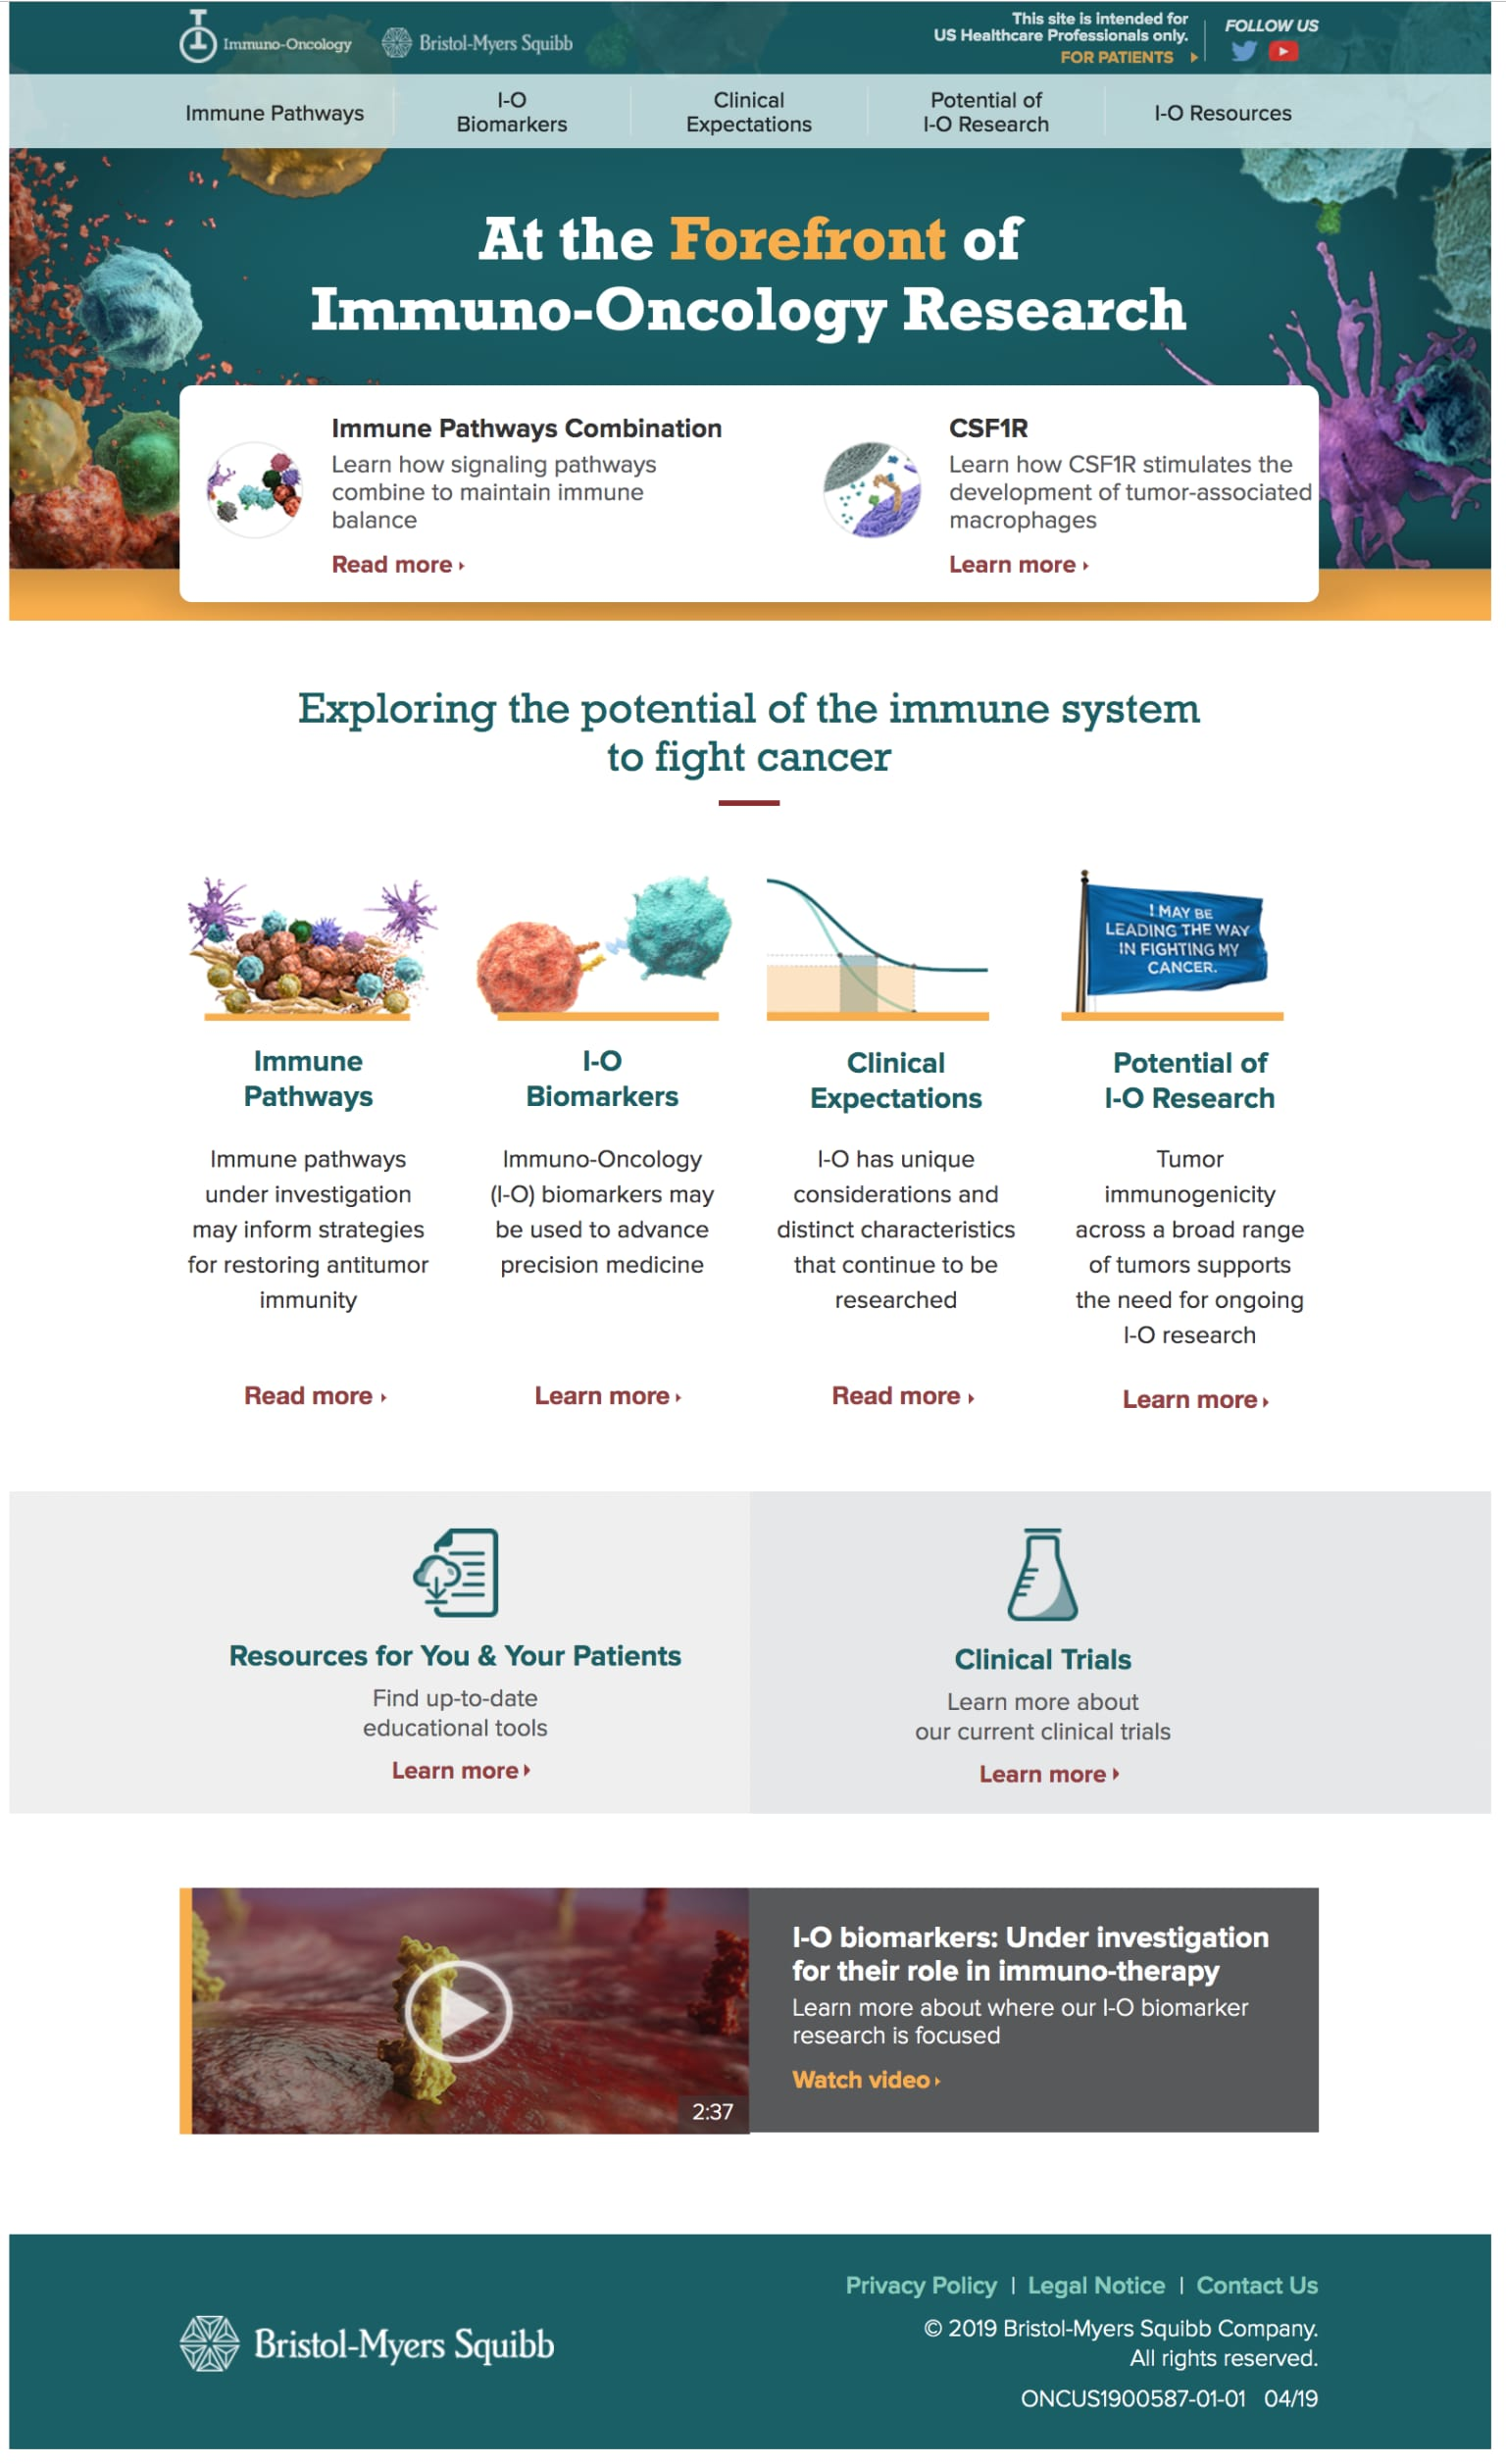 Bristol Meyers Squibb Immuno-Oncology Web Site Redesign - for HCP's